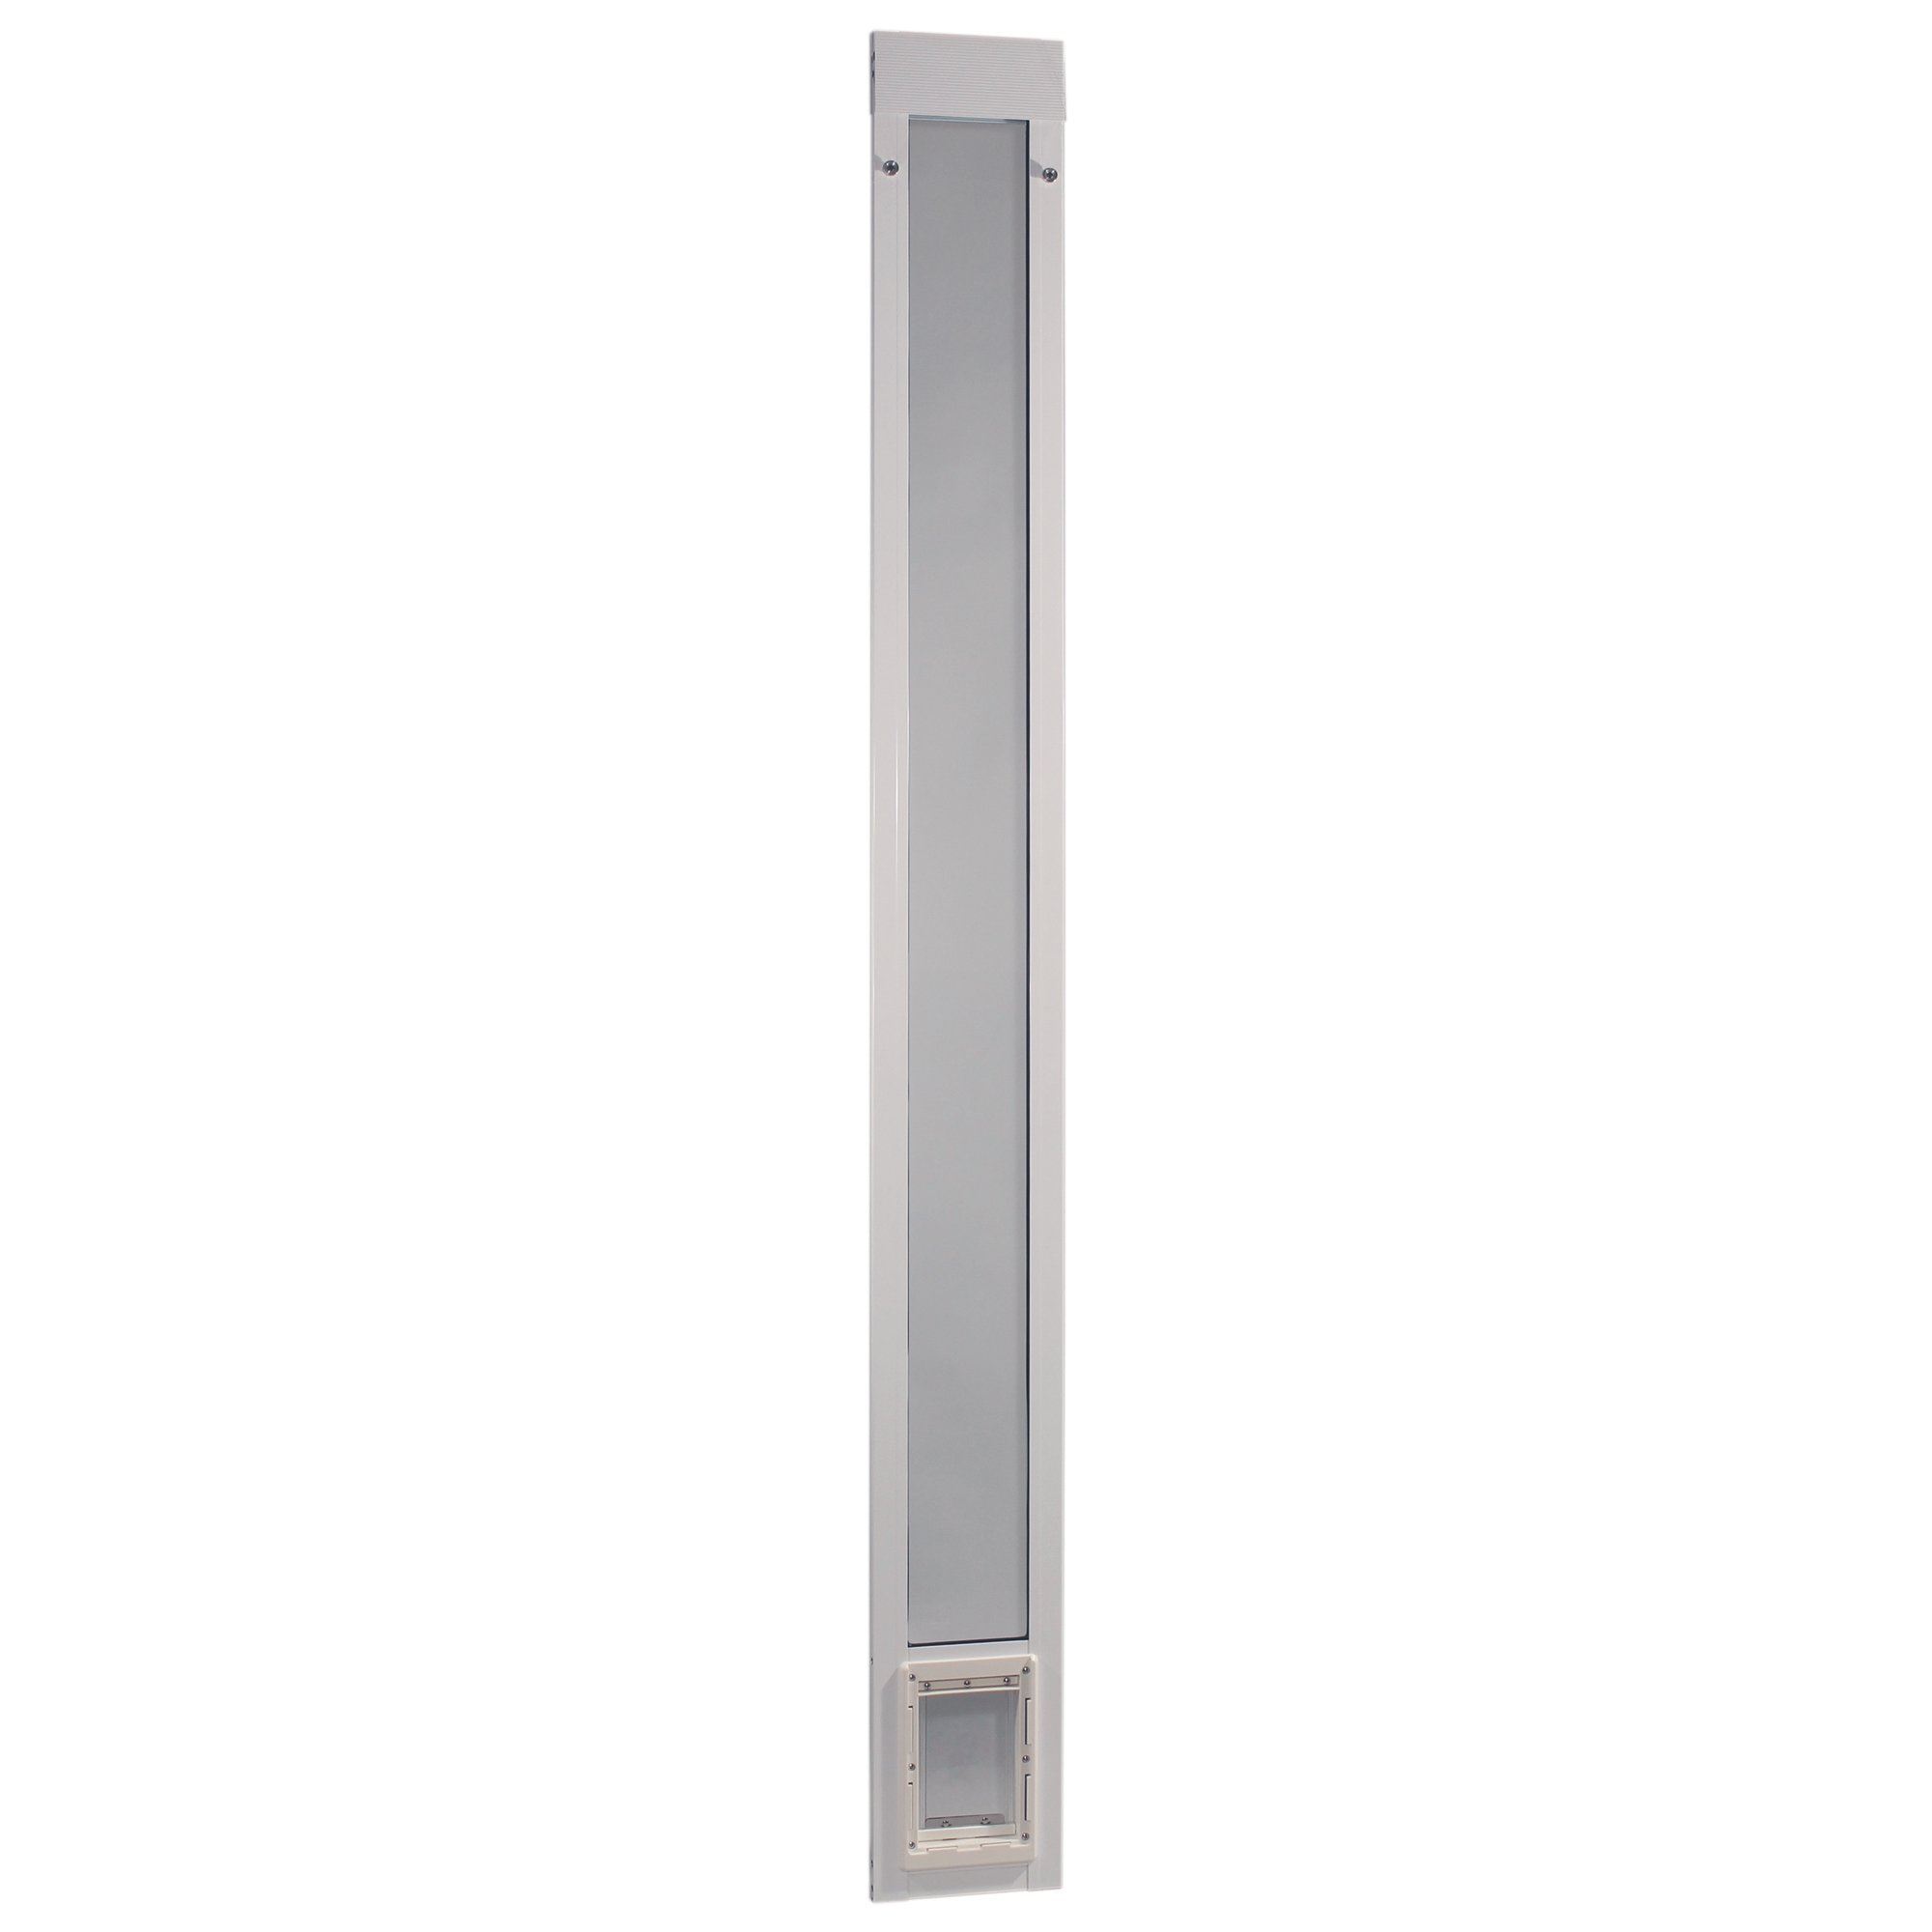 Ideal Pet Products 96'' Fast Fit Aluminum Pet Patio Door, Small,  5'' x 7'' Flap Size, White by Ideal Pet Products